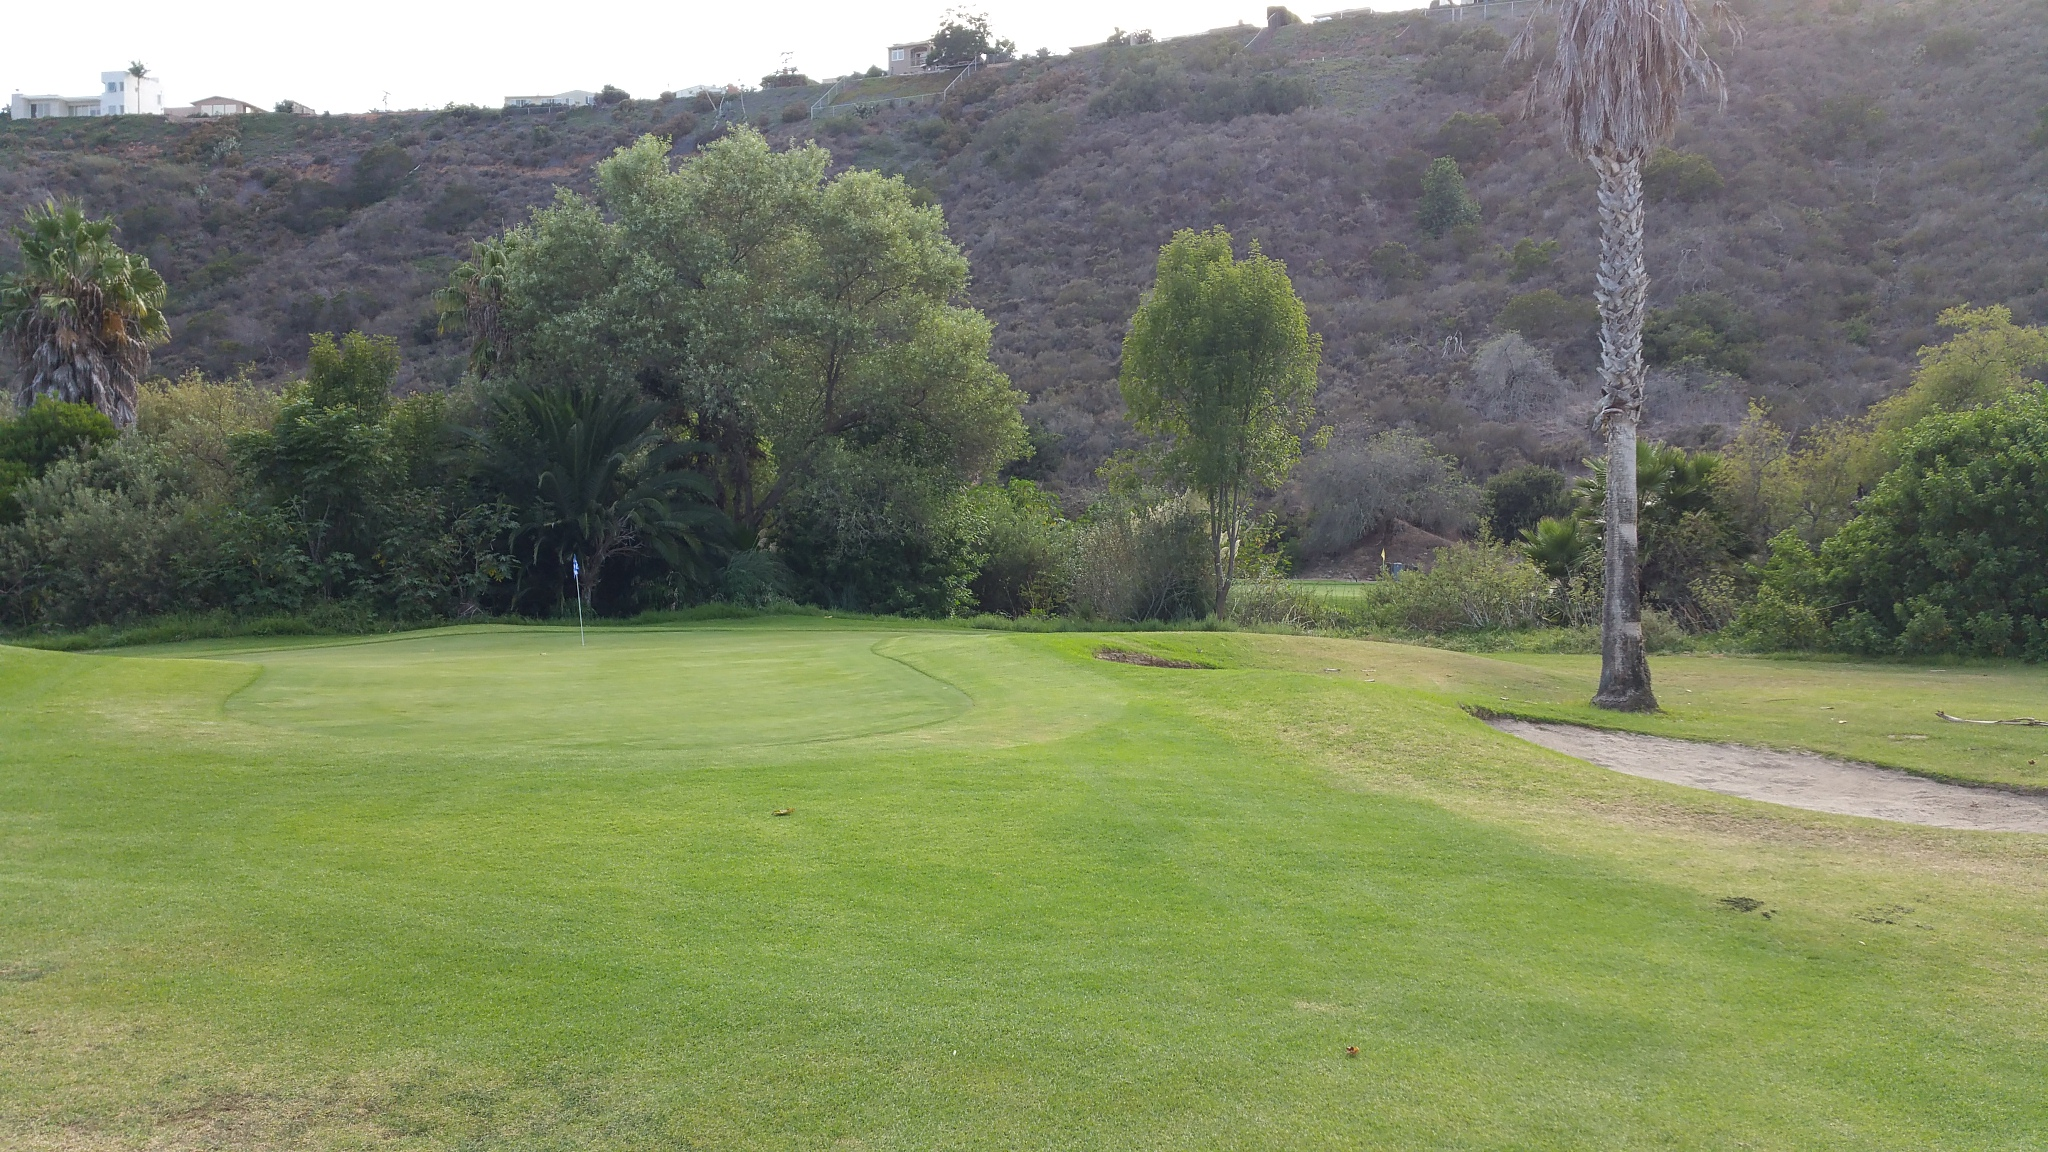 Smooth, undulating, postage stamp-size greens are one of the great features at Tecolote Canyon Golf Club in San Diego.